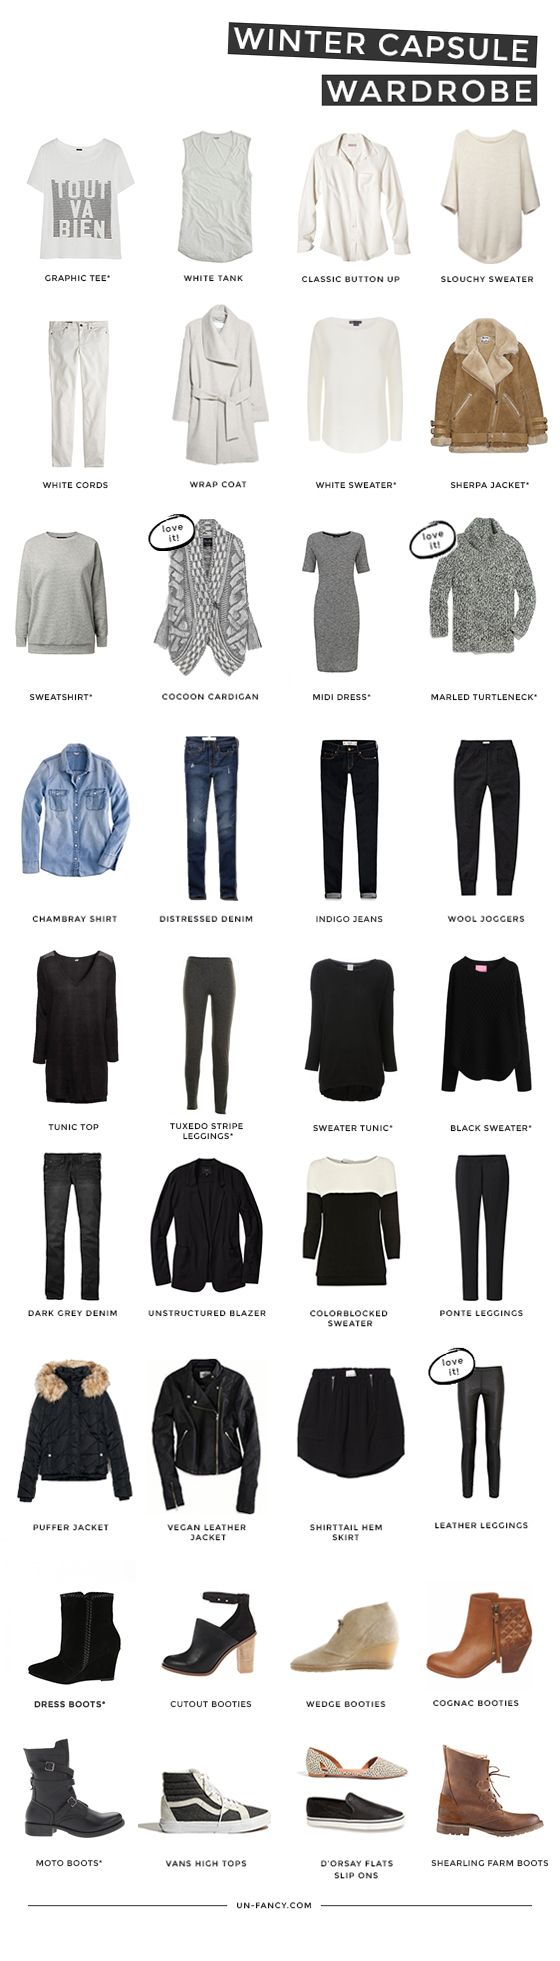 Put on your cozy socks and let's get excited about winter! Pssst … here's a refresher course on capsule wardrobes, just in case you want to brush up. And here's a quick update about my …